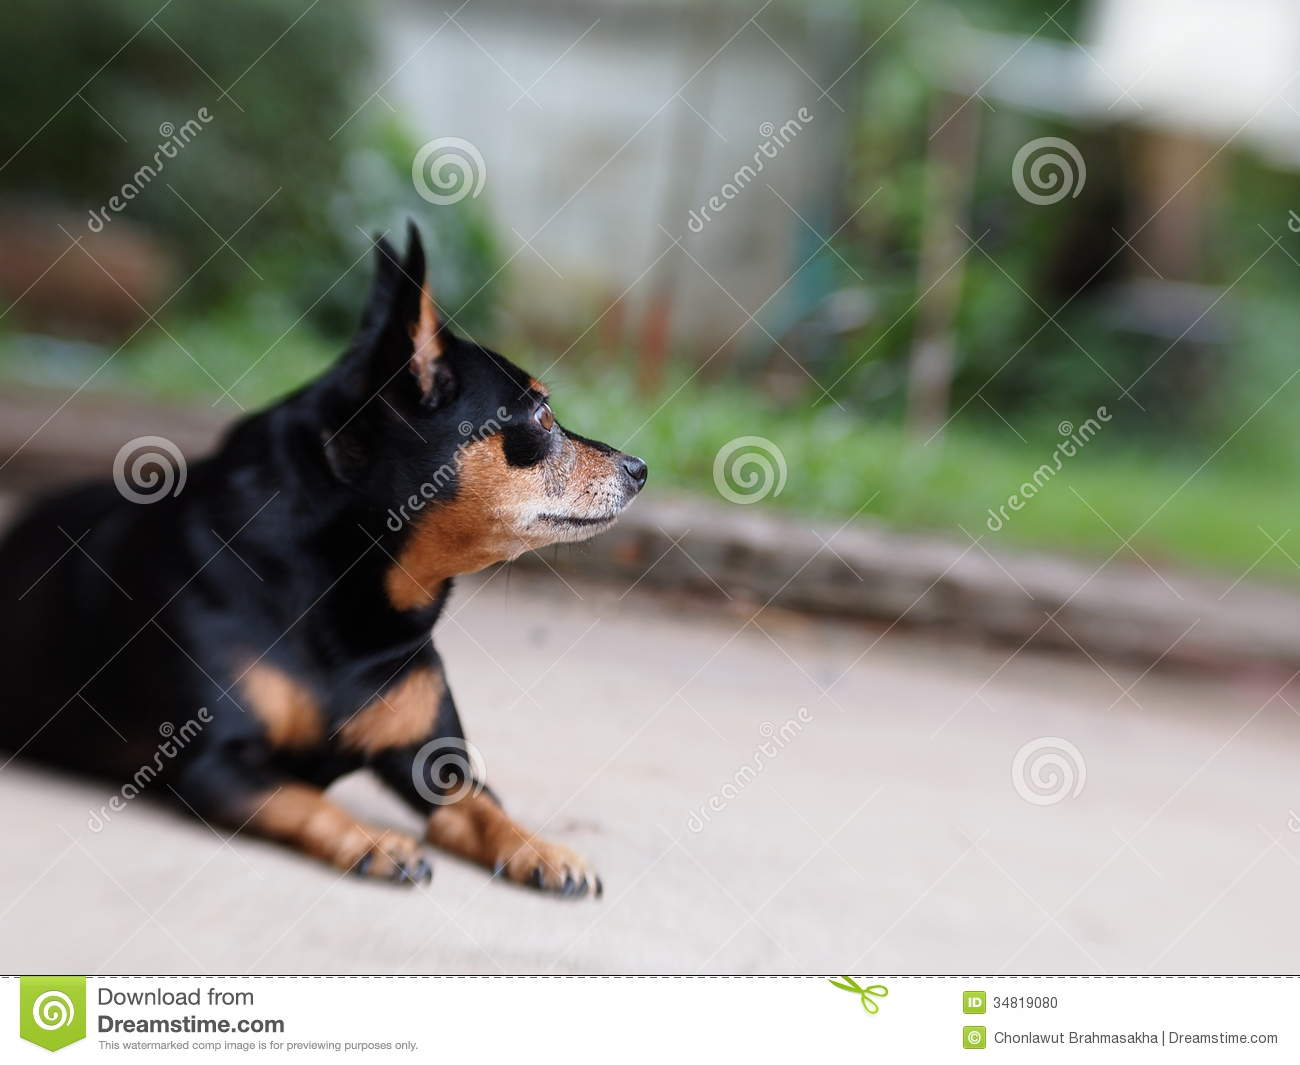 Stock Photo Lovely Miniature Pinscher Dog Black Small Fat Playing Field Green Area Image34819080 on small clinic floor plans